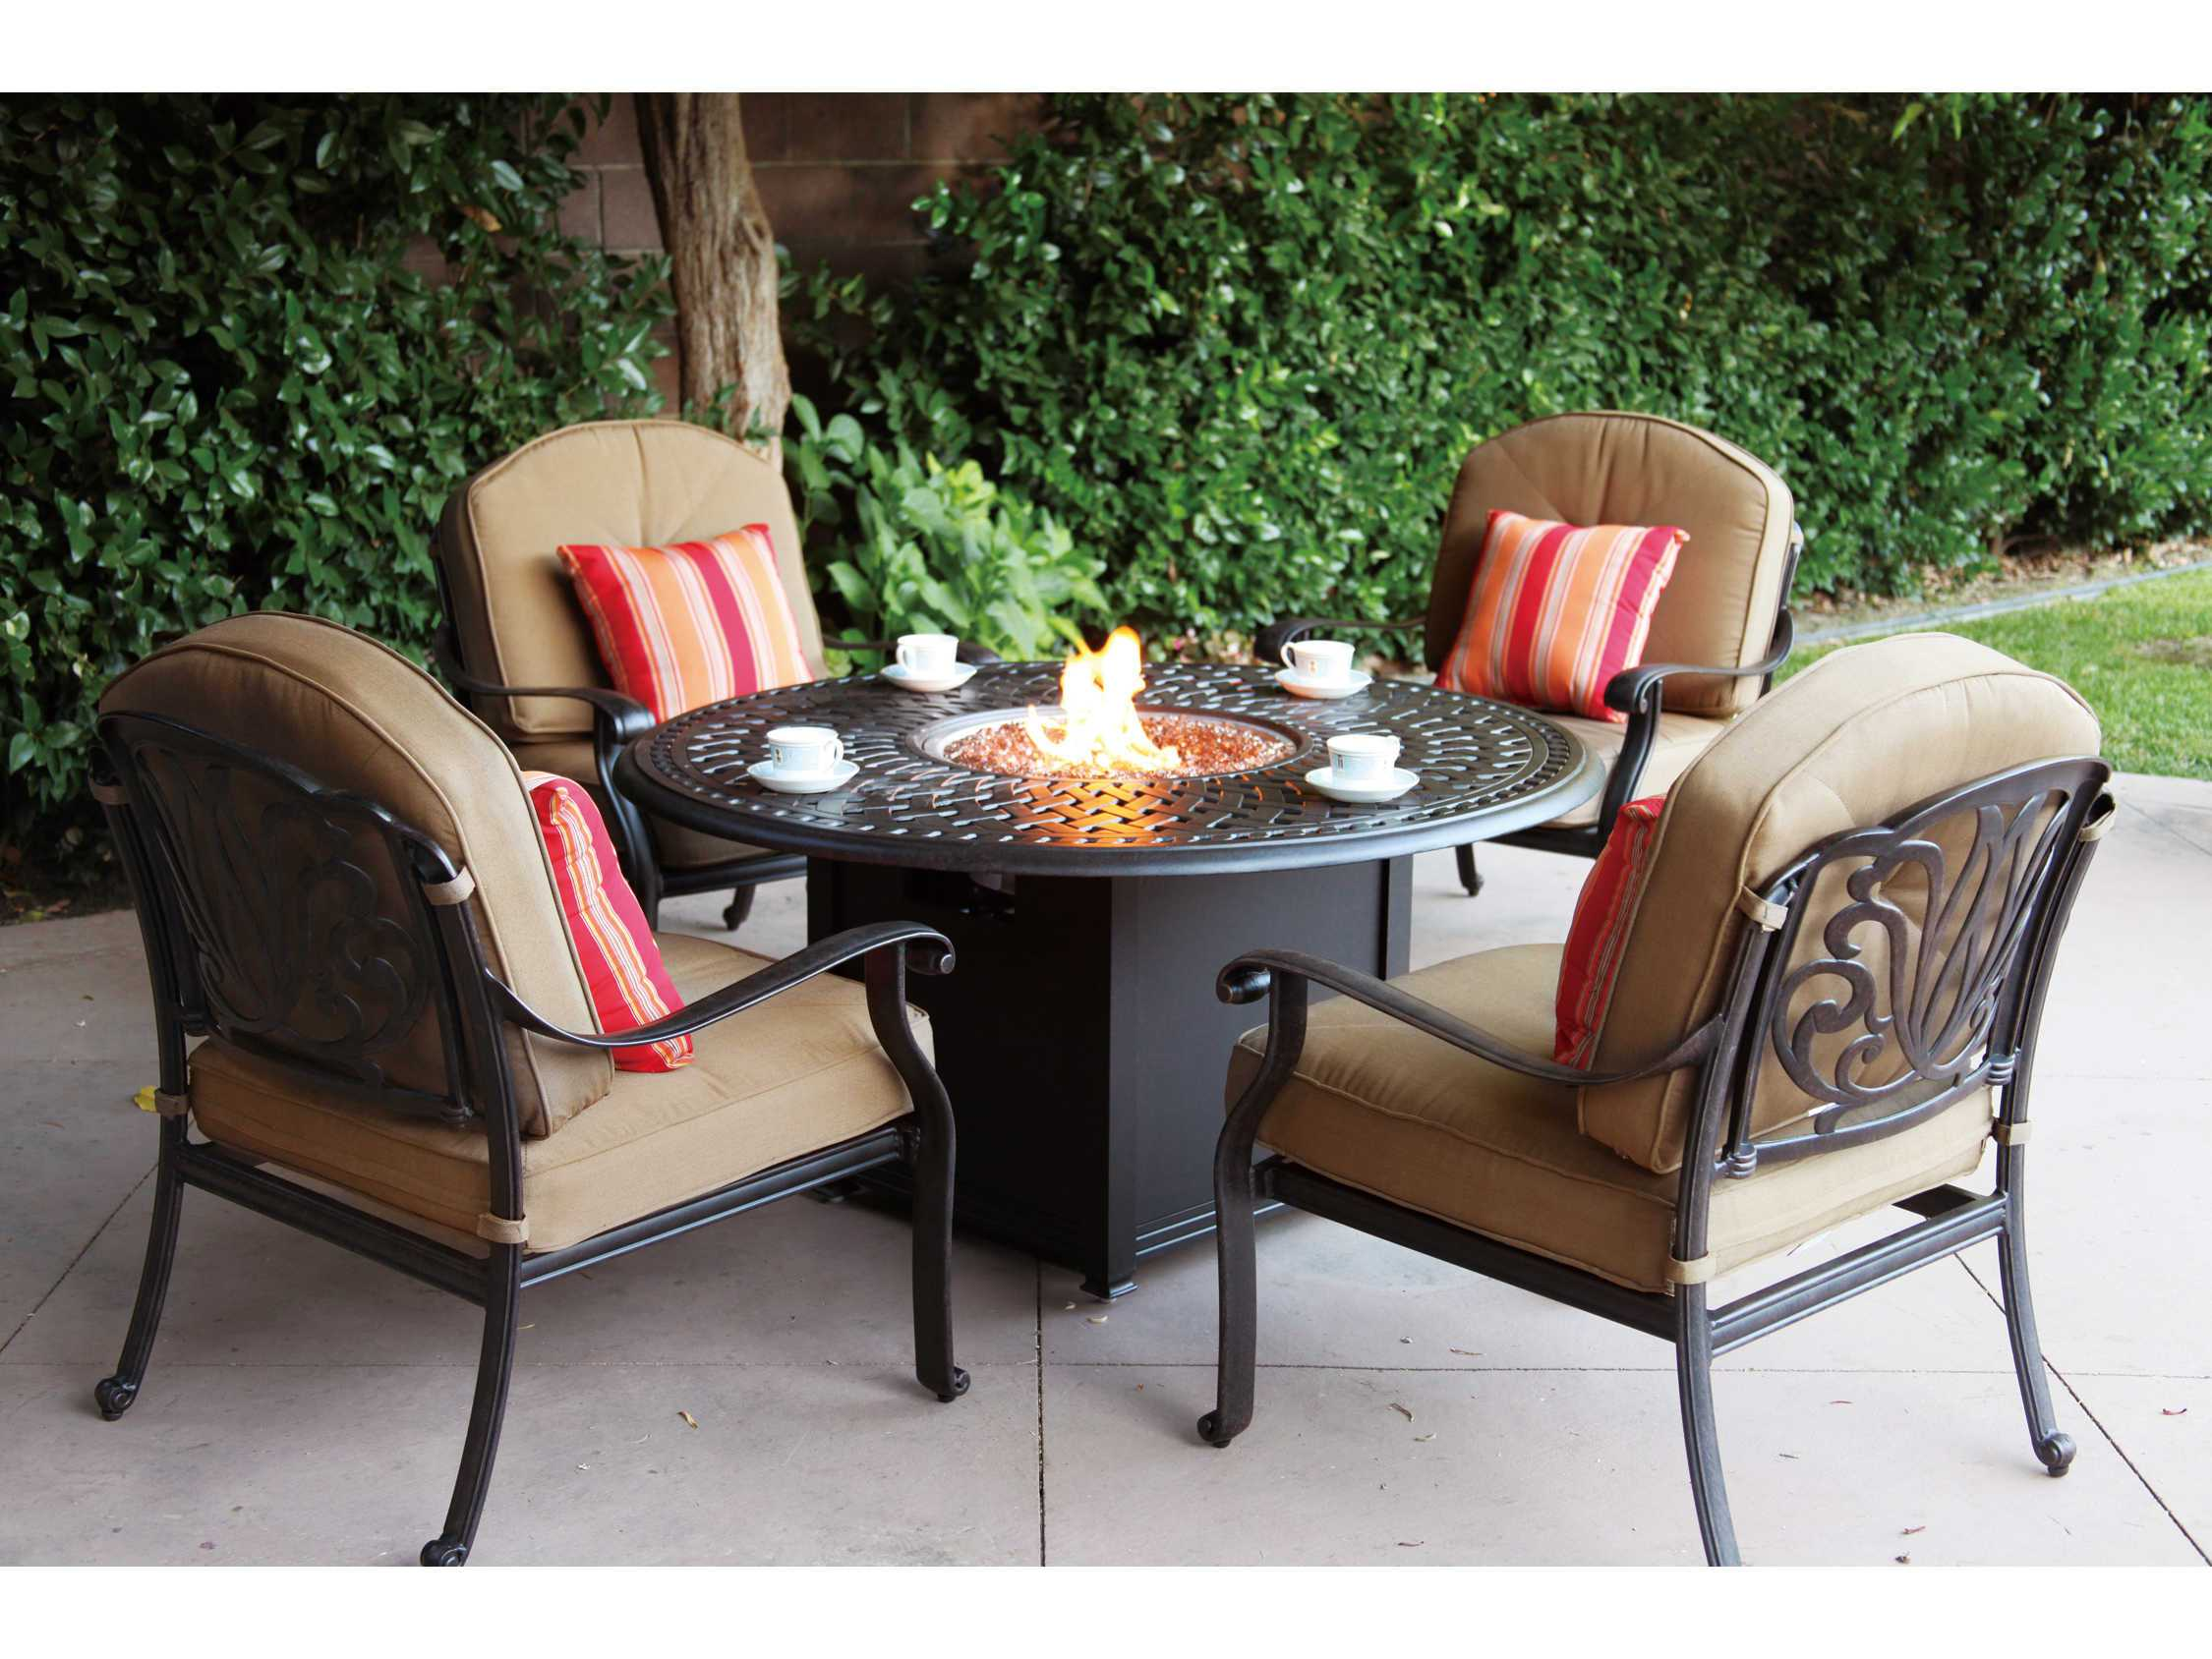 Living Series 60 Cast Aluminum 60 Round Propane Fire Pit Dining Table